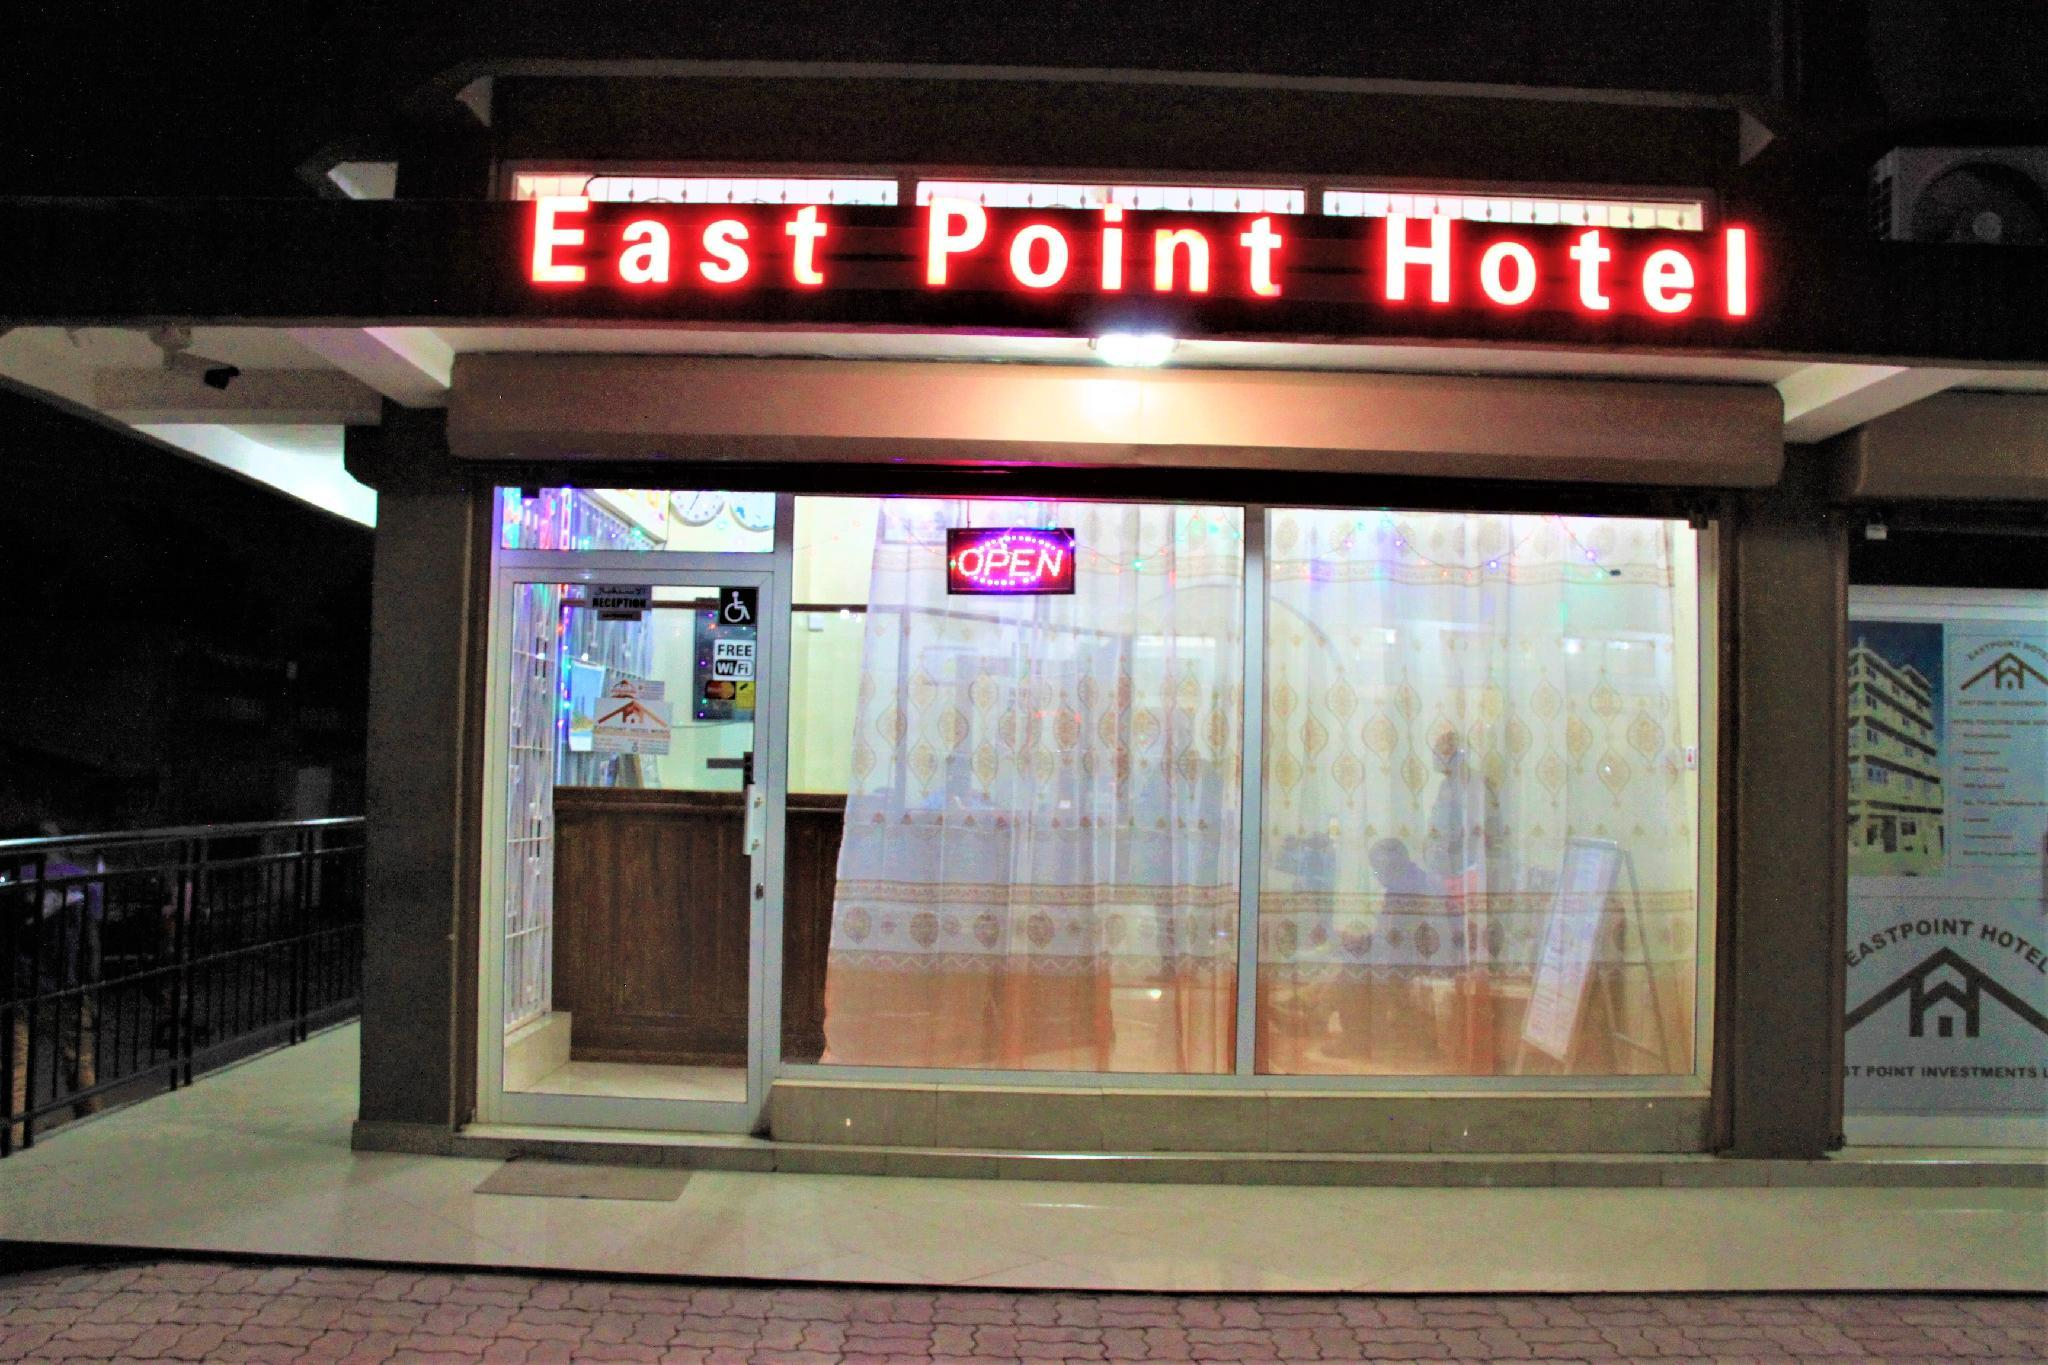 East Point Hotel